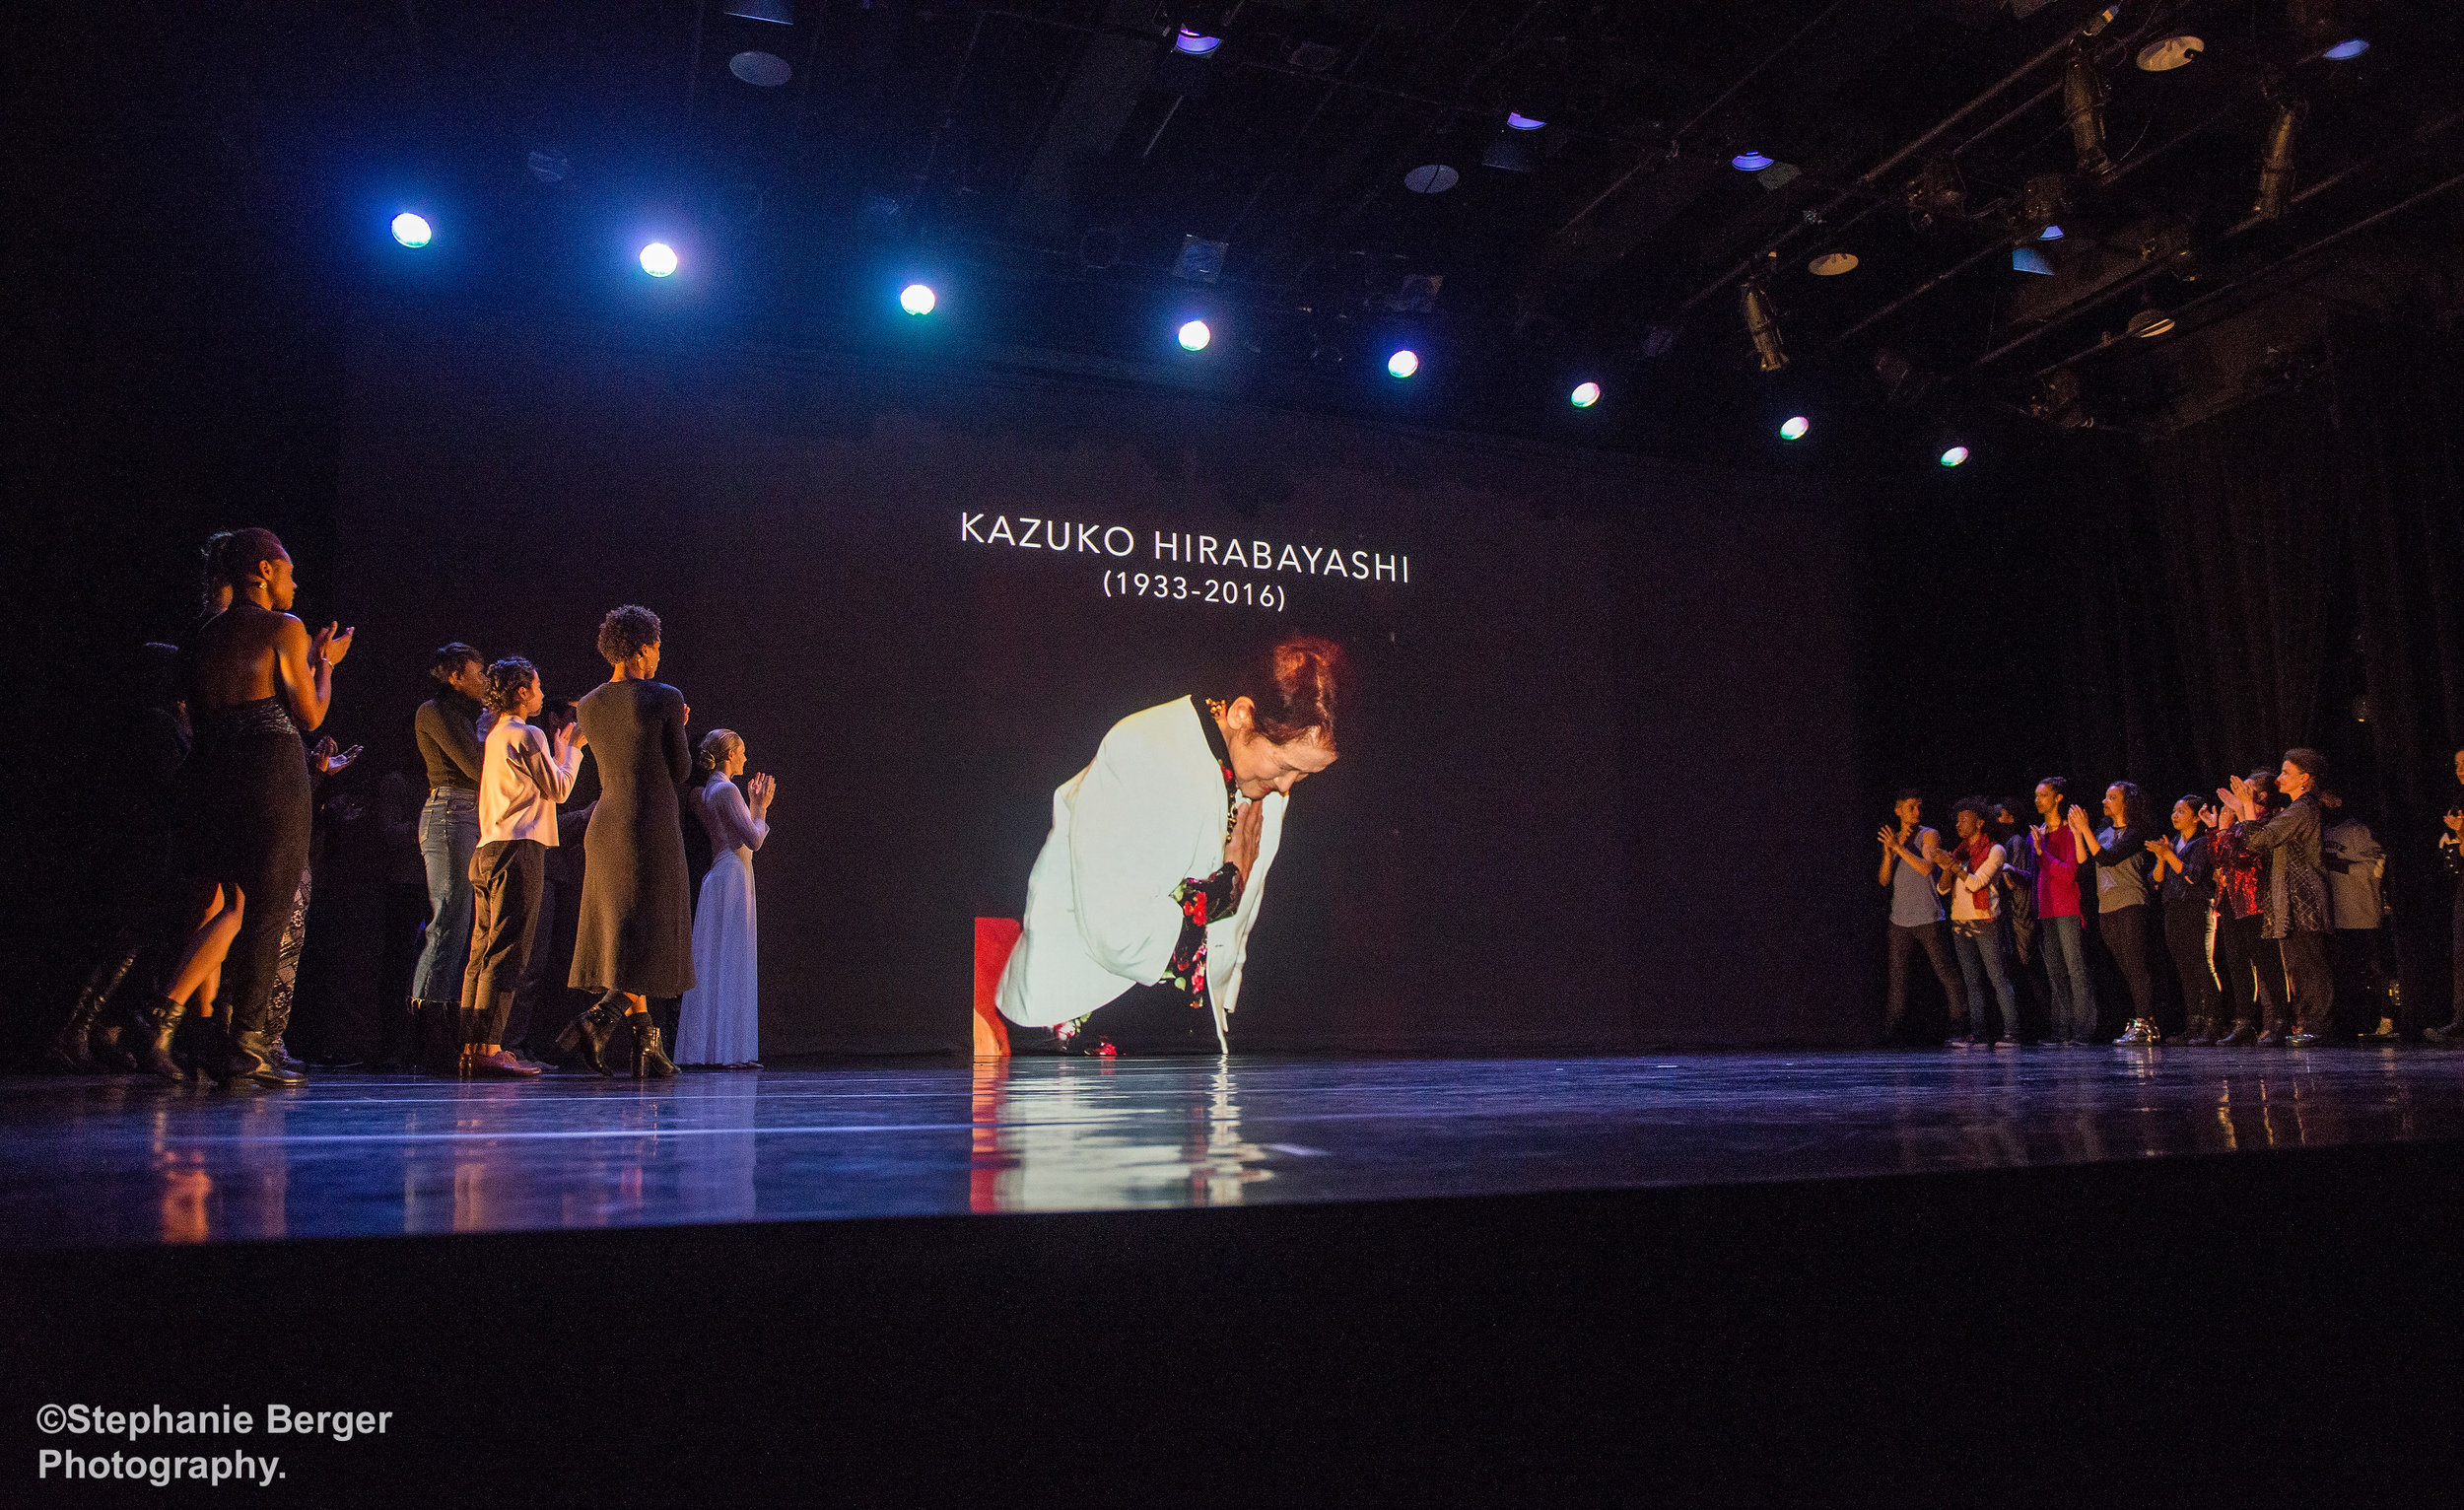 Final Salute to Kazuko